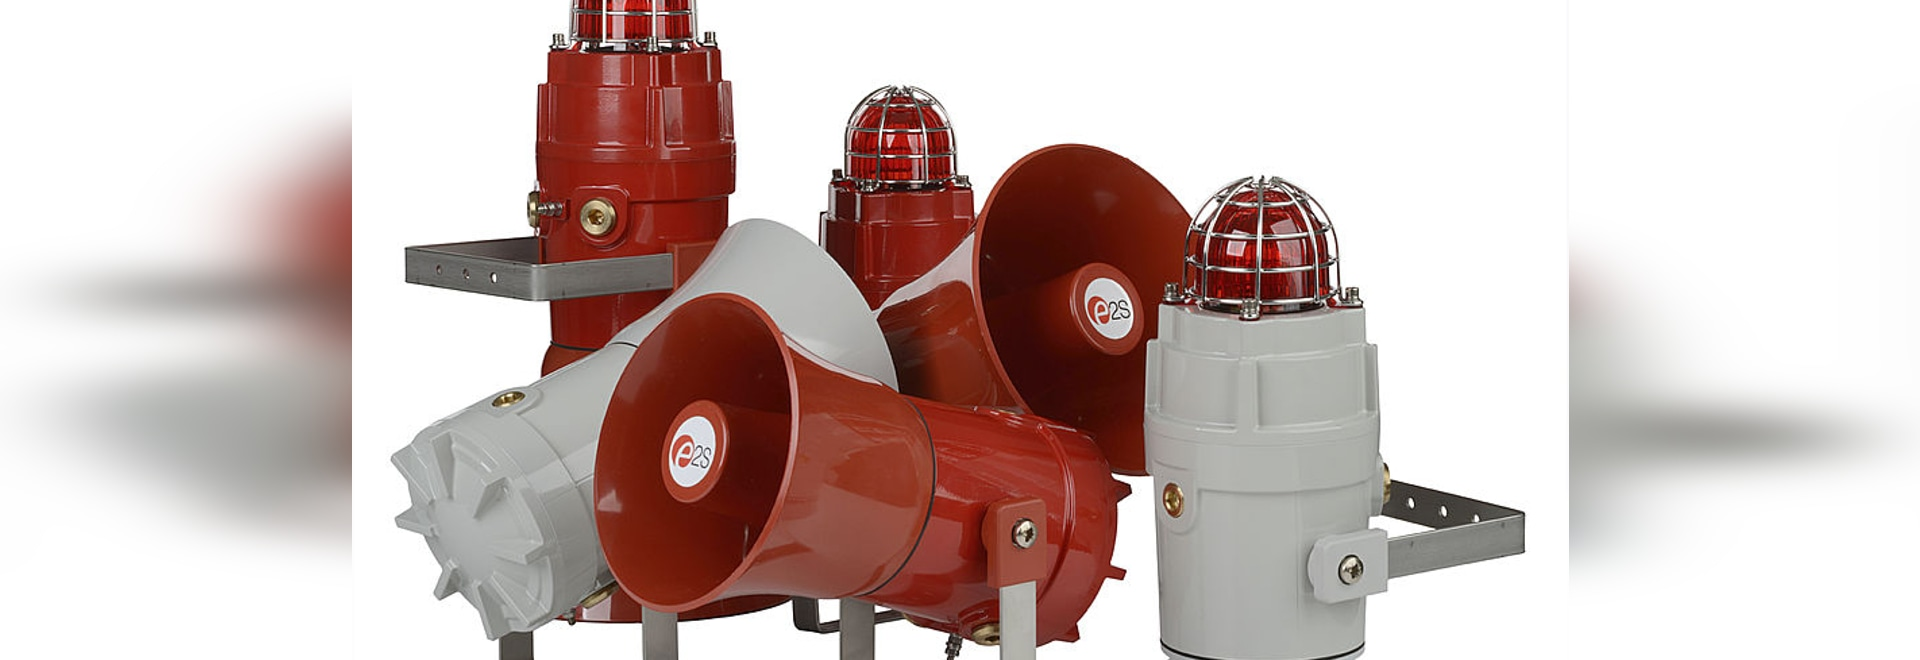 The new 'D1x' family from E2S Warning Signals for Class I Div.1 applications